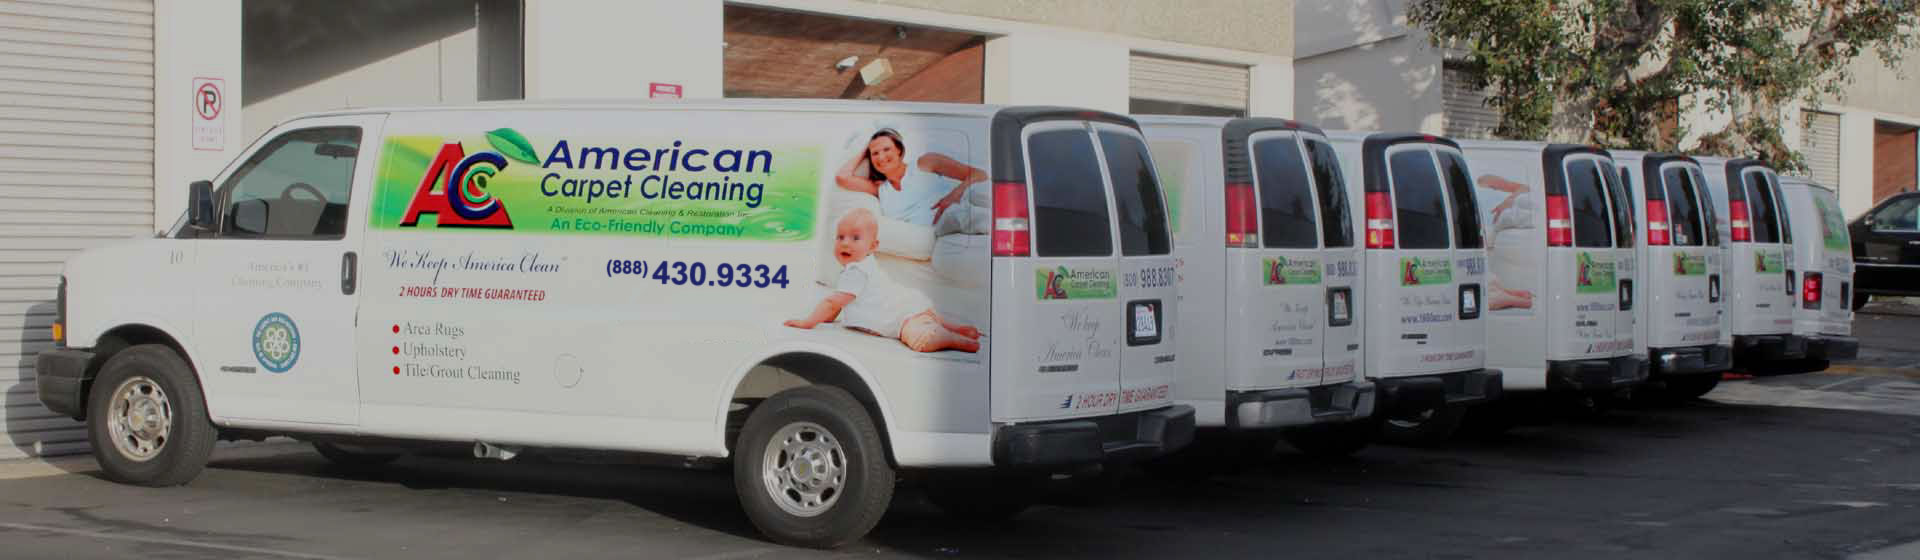 American Carpet Cleaning Commercial Amp Residential Carpet